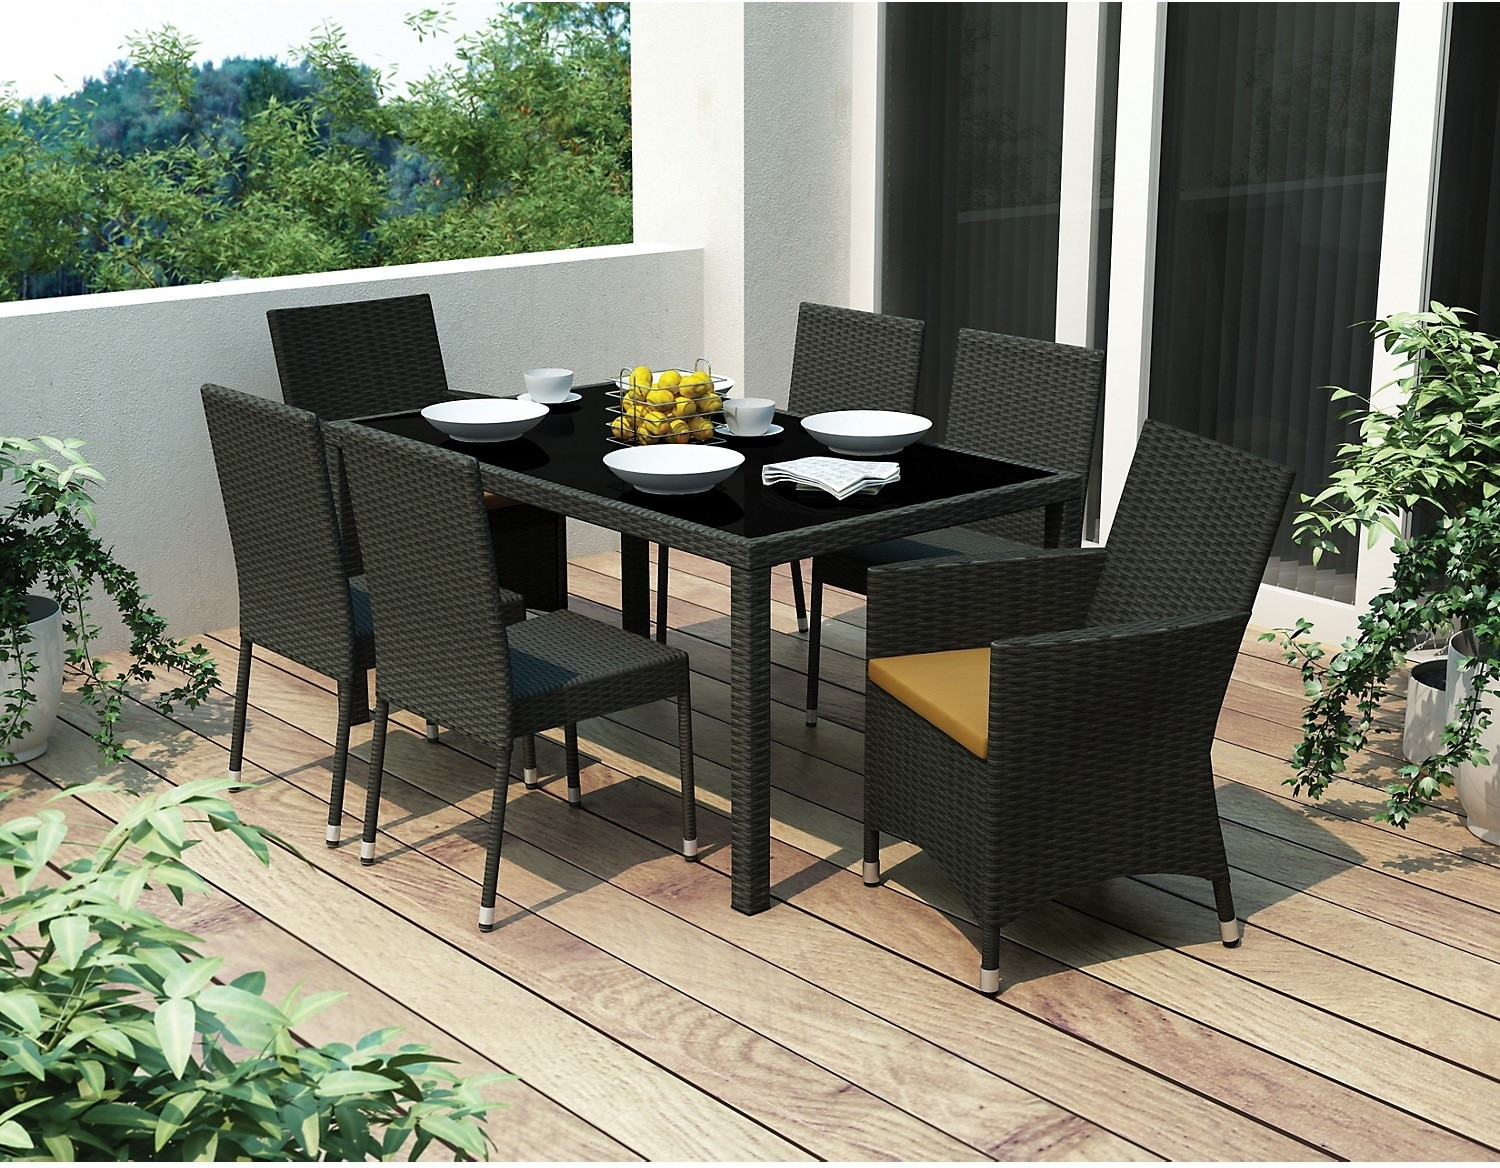 Patio Furniture Kitchener Outdoor Dining The Brick